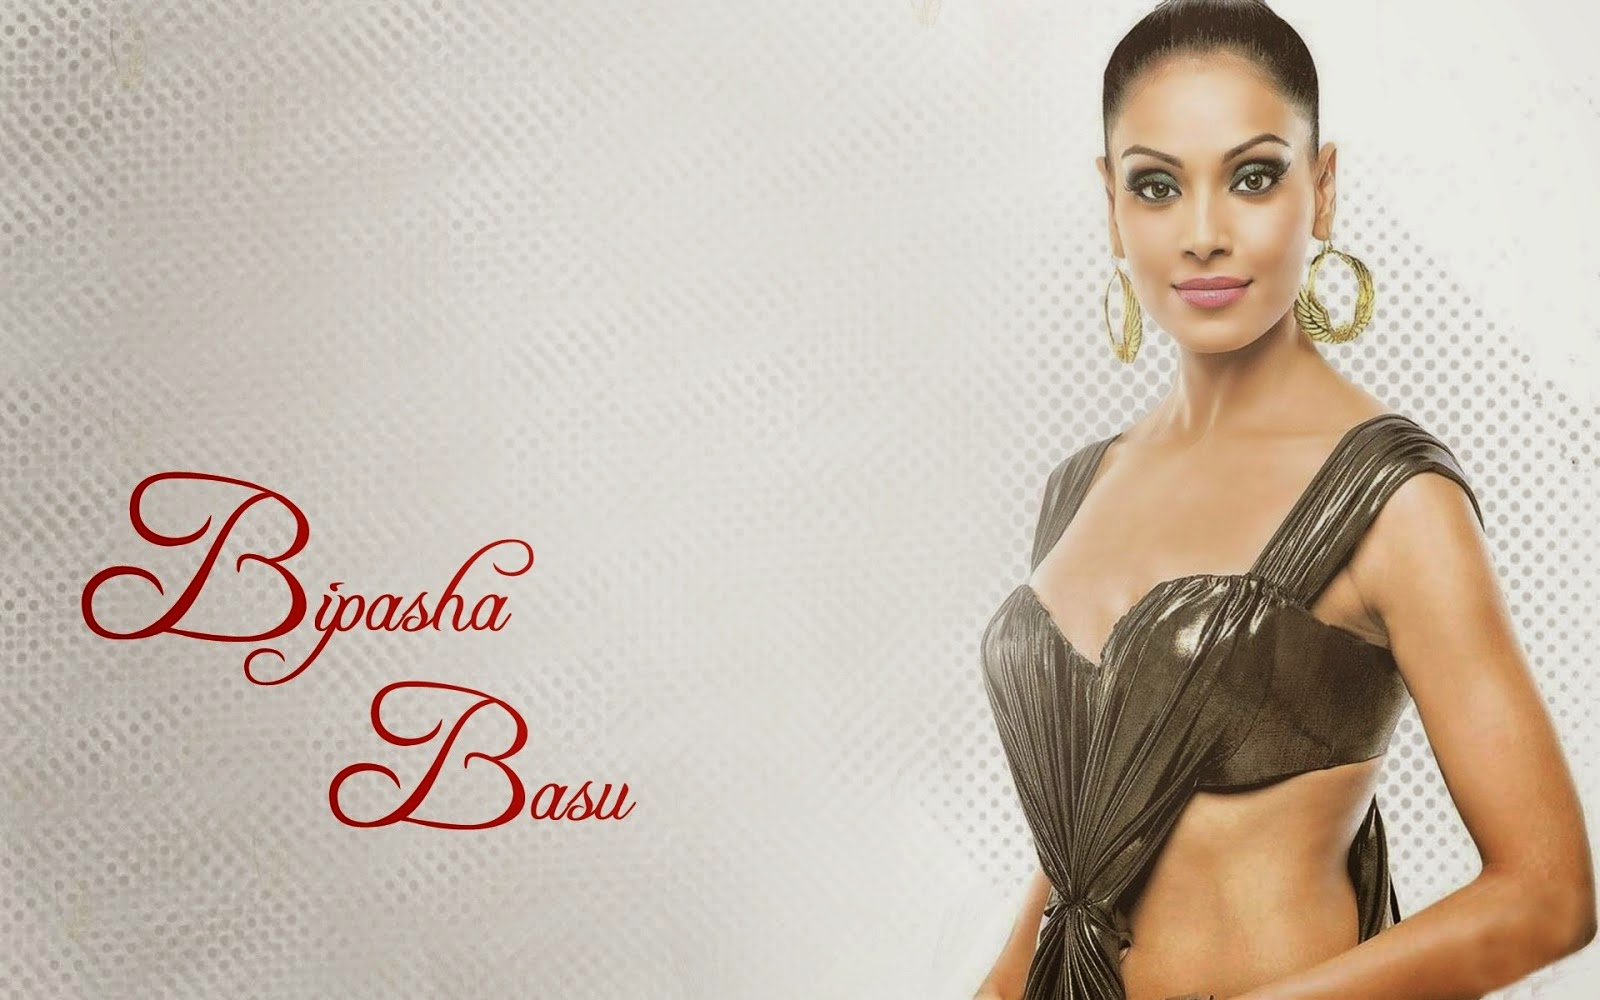 bipasha basu hot unseen hd images free download | salman khan hd